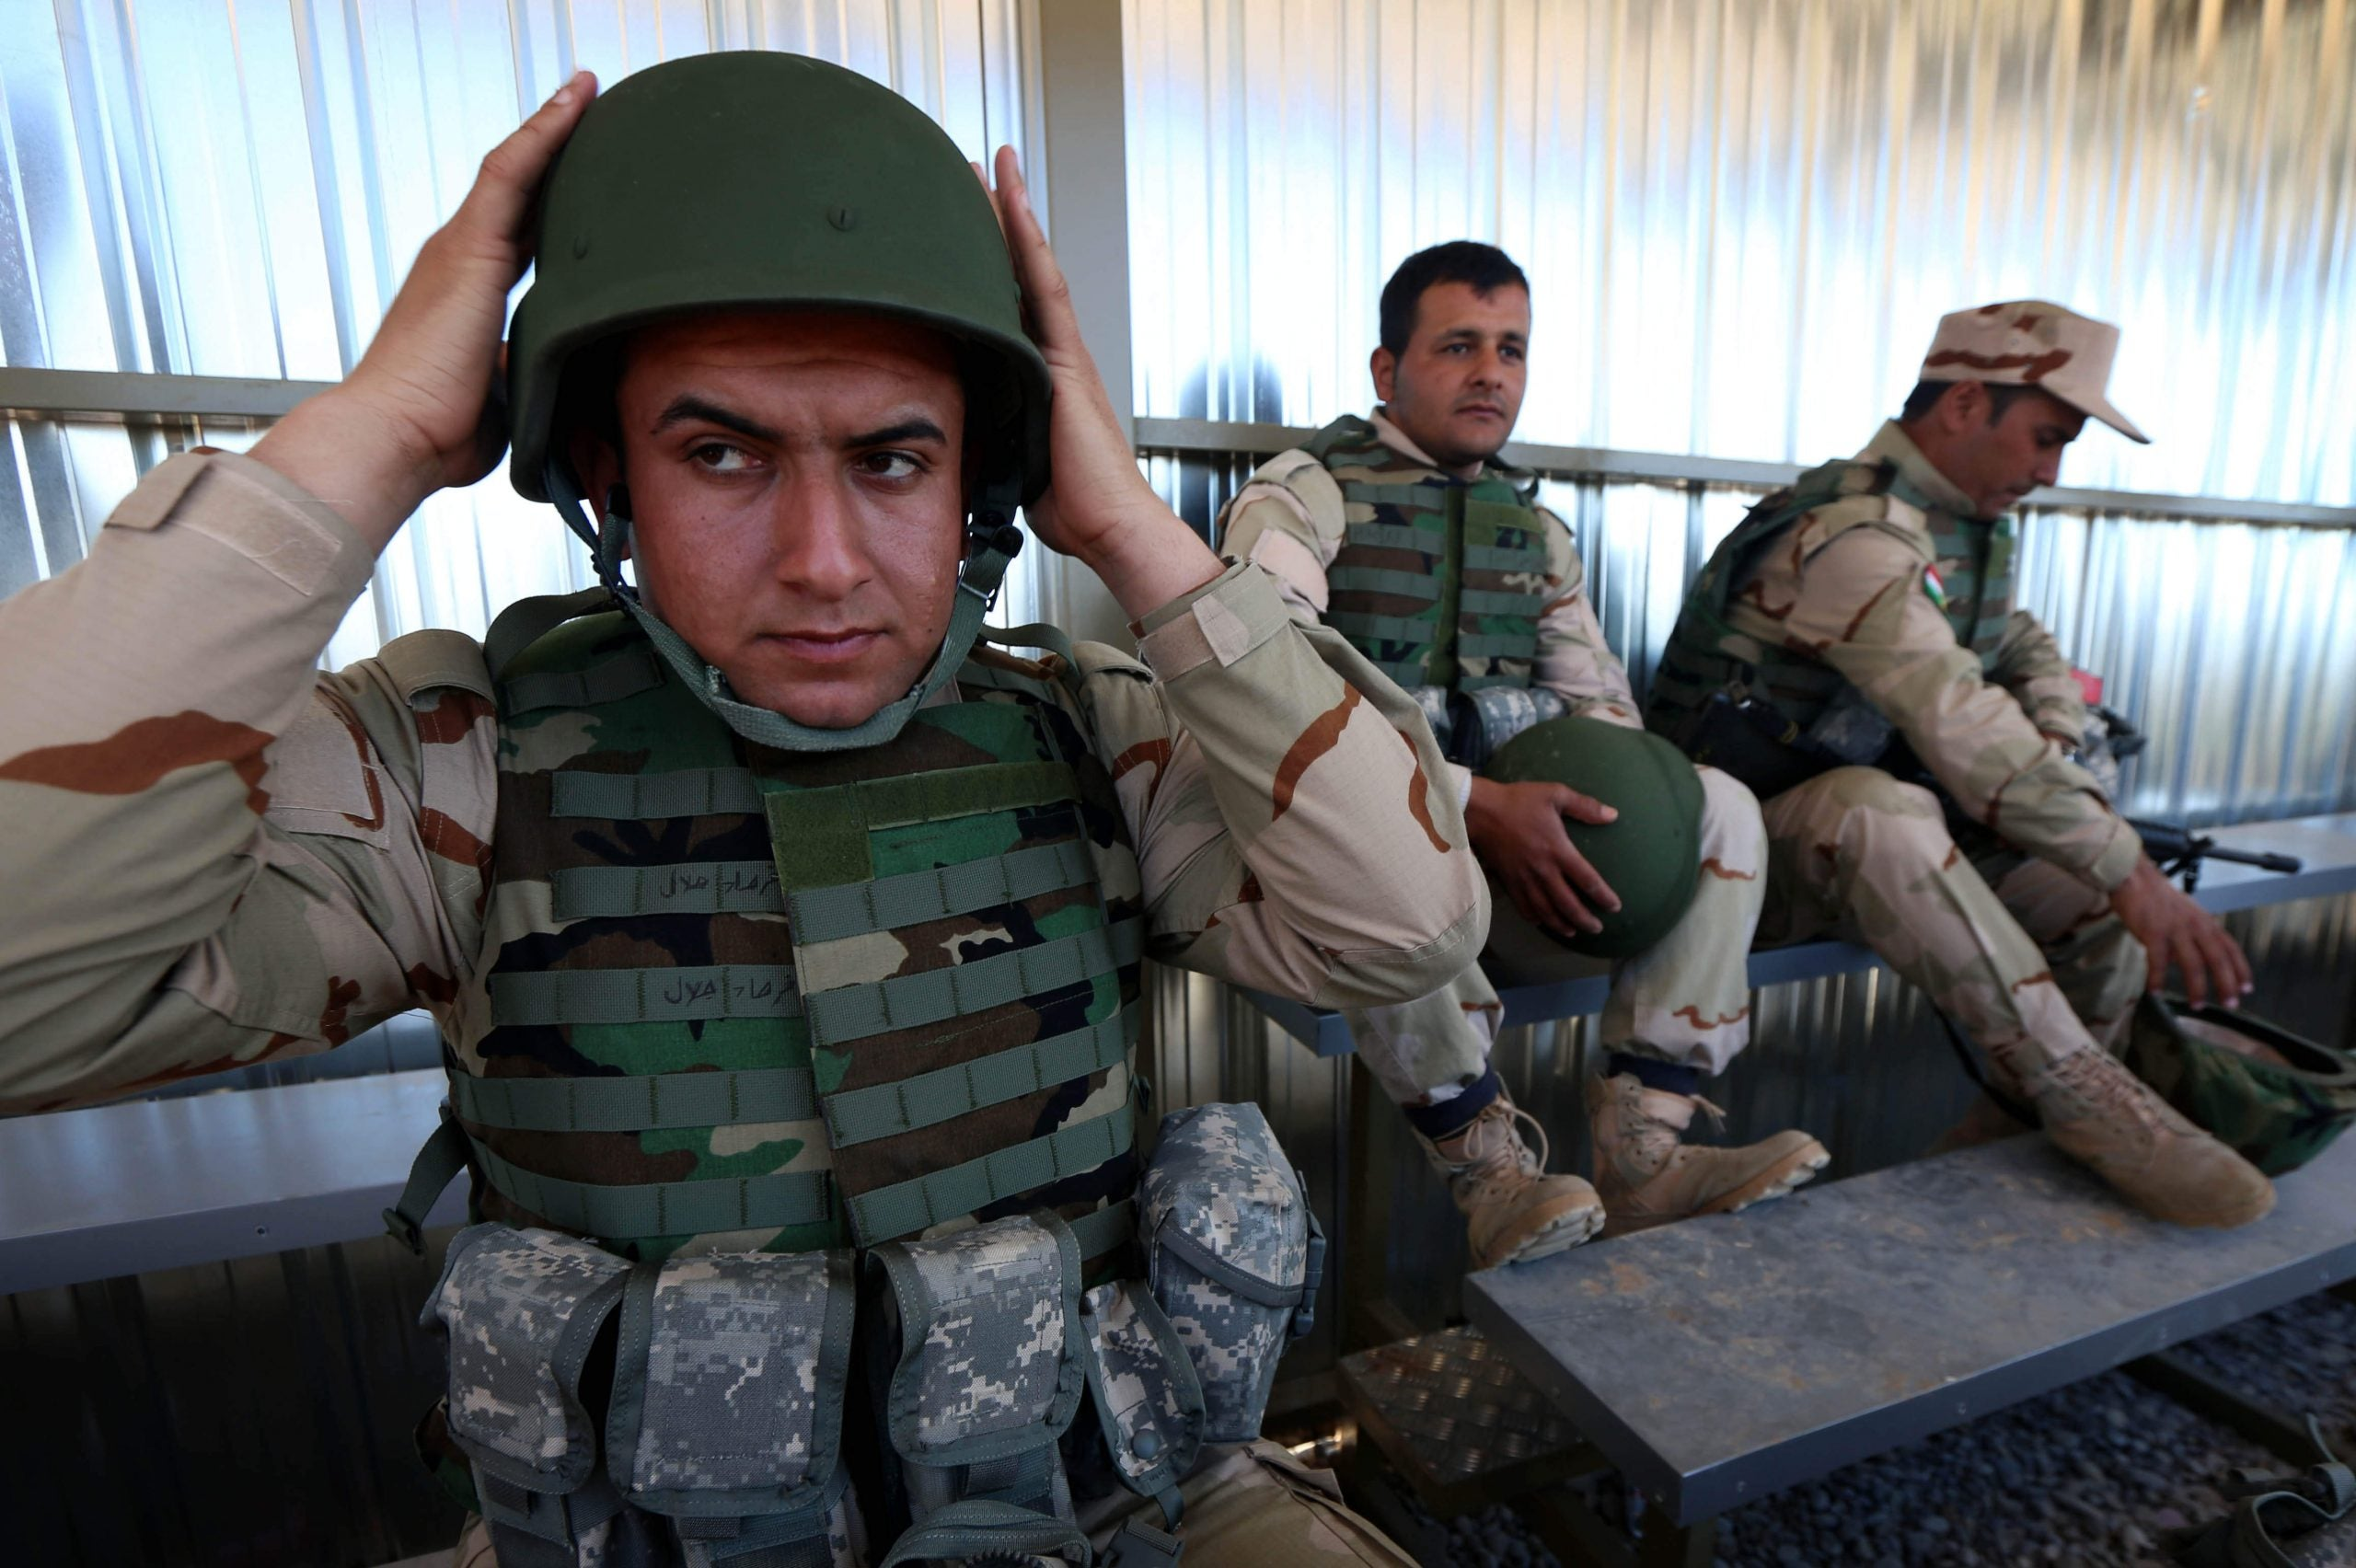 Don't let Iraq's Kurds be erased from the conversation about the Middle East